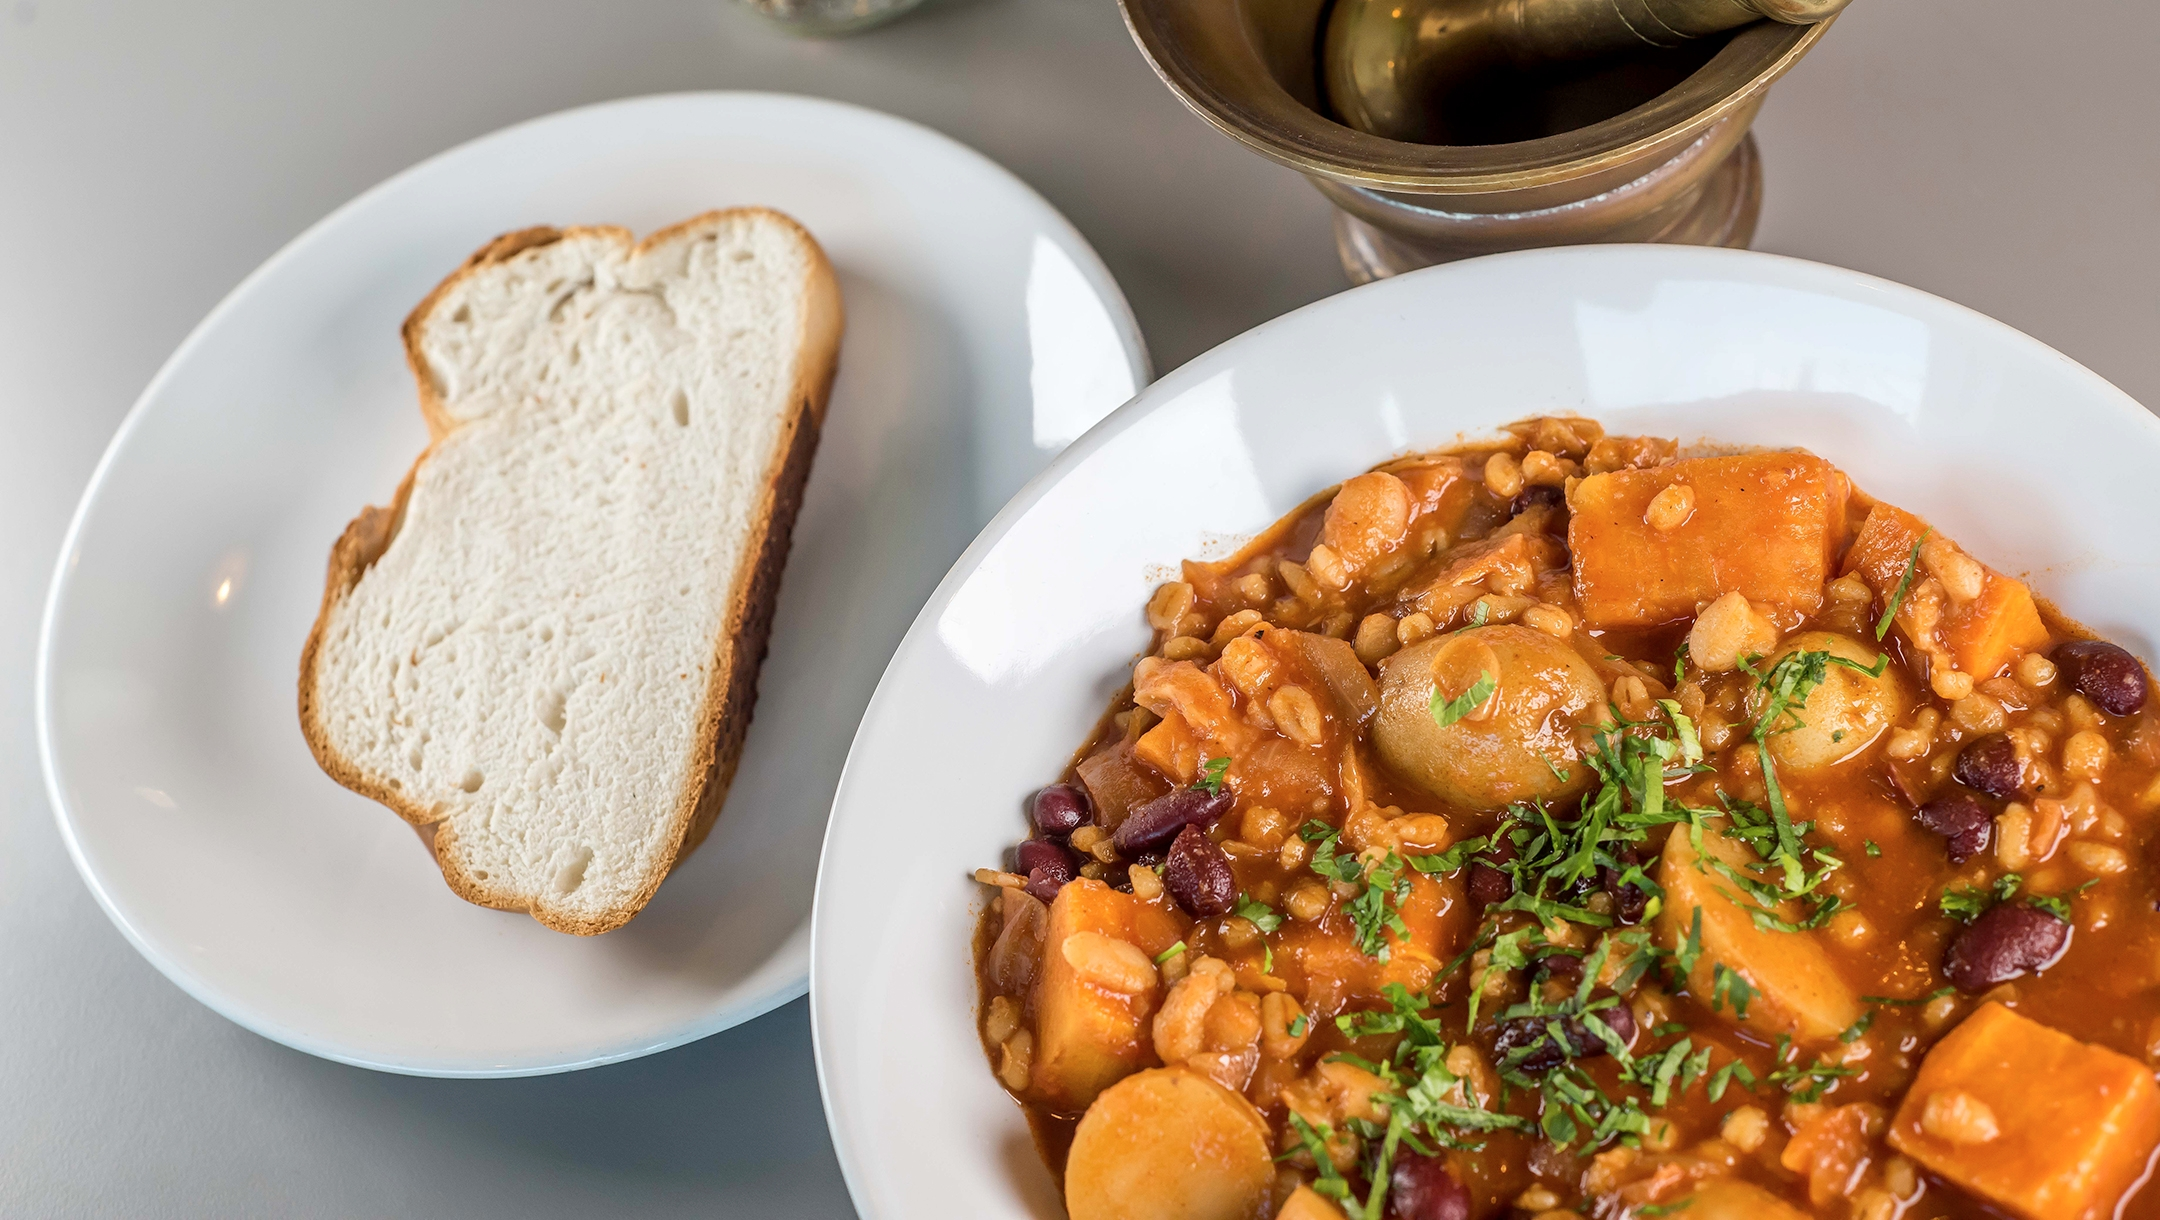 Cholent is featured and served at the kosher-style café at the Manchester Jewish Museum in Manchester, UK, which reopened following renovations on July 2, 2021. (Chris Payne)